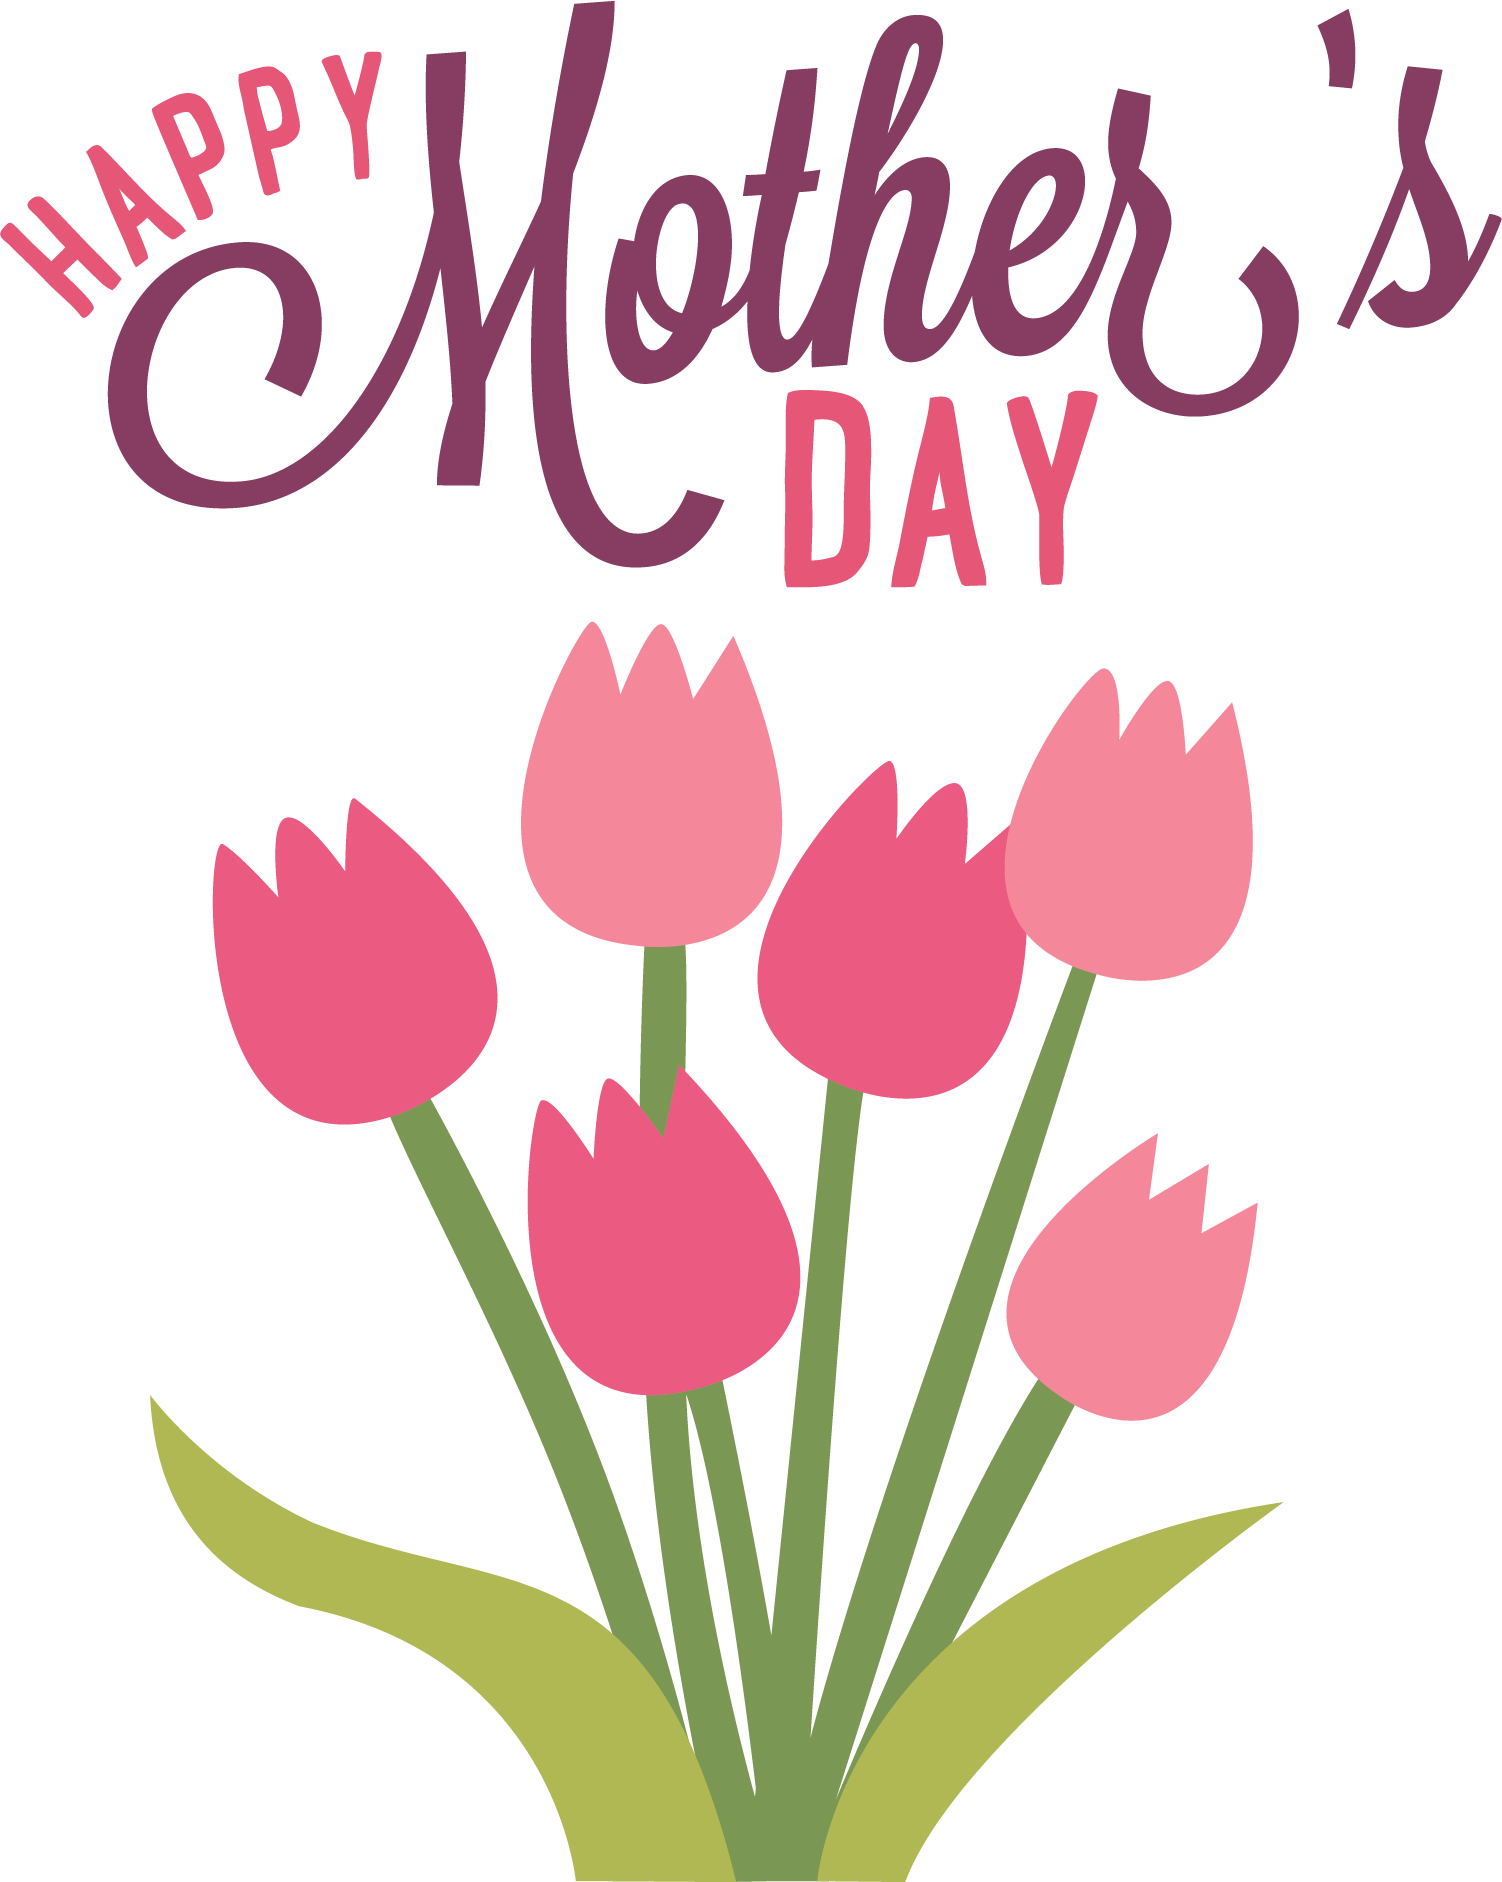 Happy Mothers Day Banner transparent PNG.